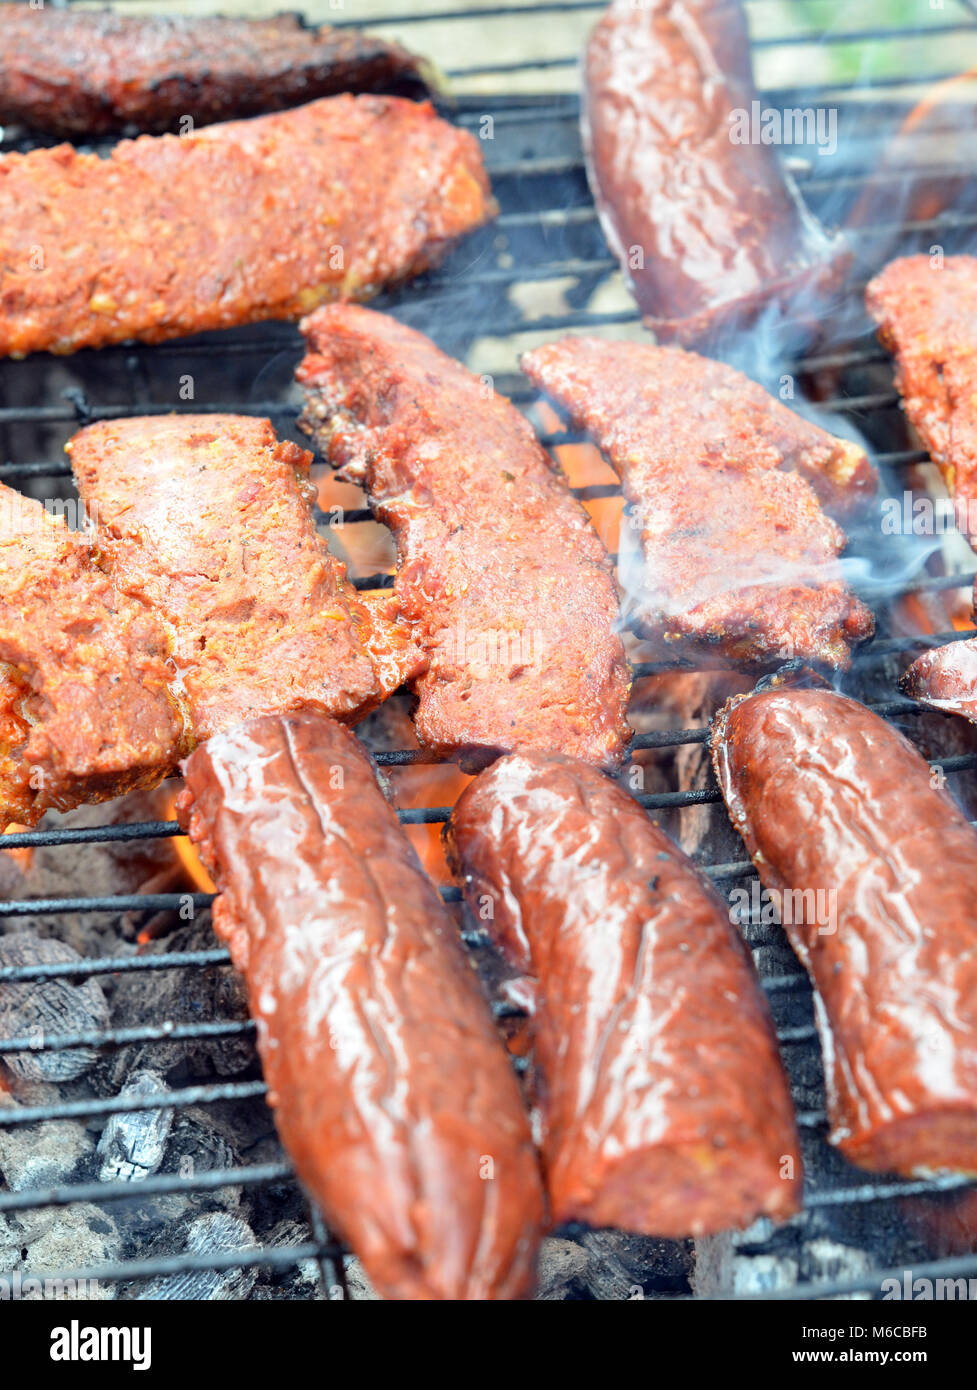 Picture of a Fat Sausage on a grill, Food concept - Stock Image